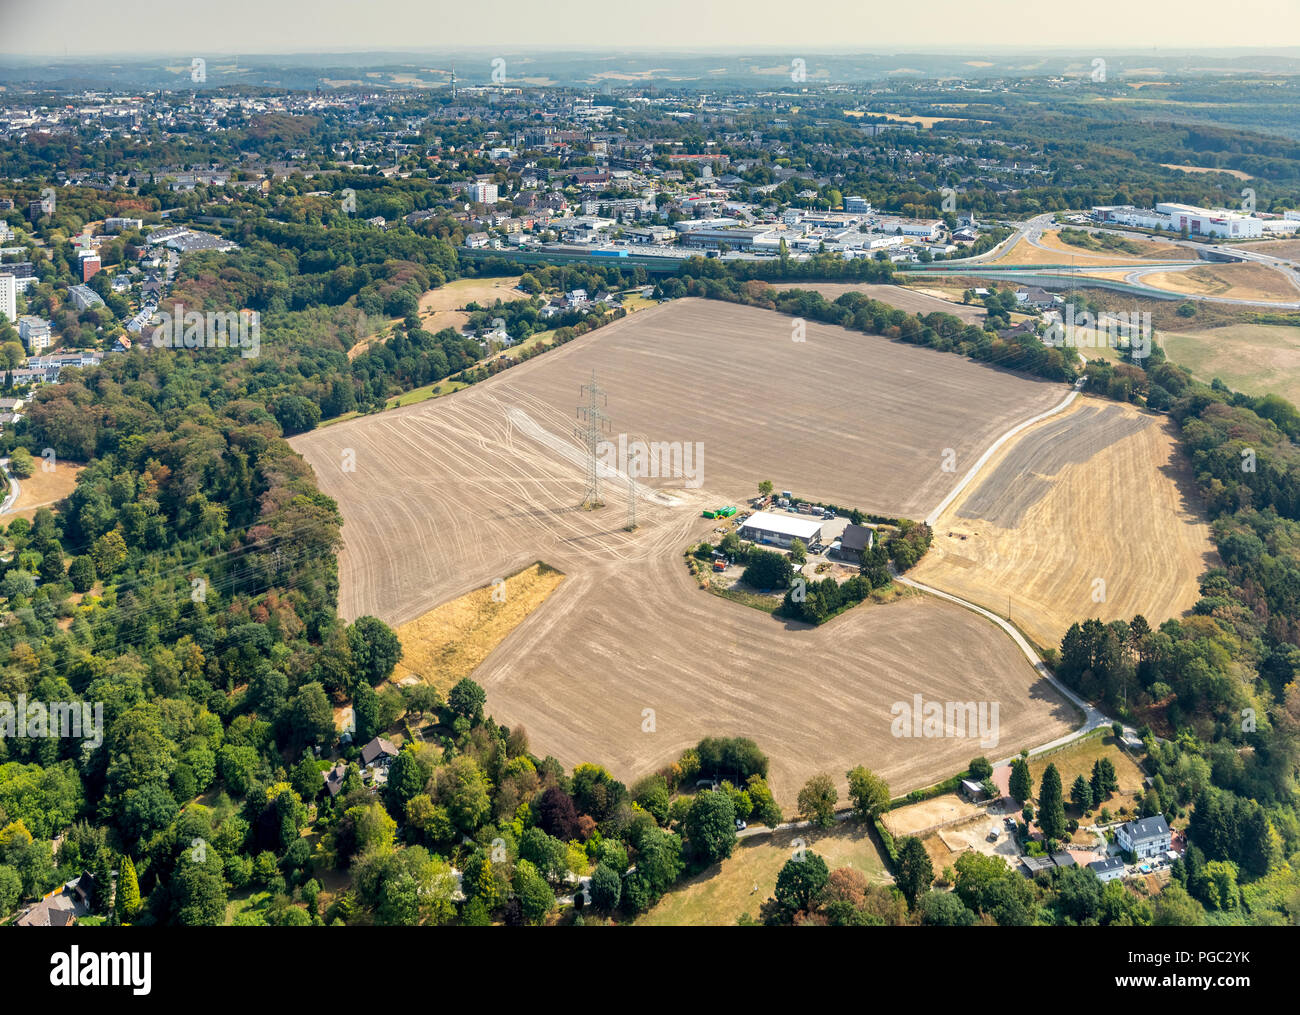 Bare fields, early harvest due to drought and dryness next to the highway A44, here City border Ziwchen Velbert birth and Hetterscheidt, Brangerbusch, - Stock Image